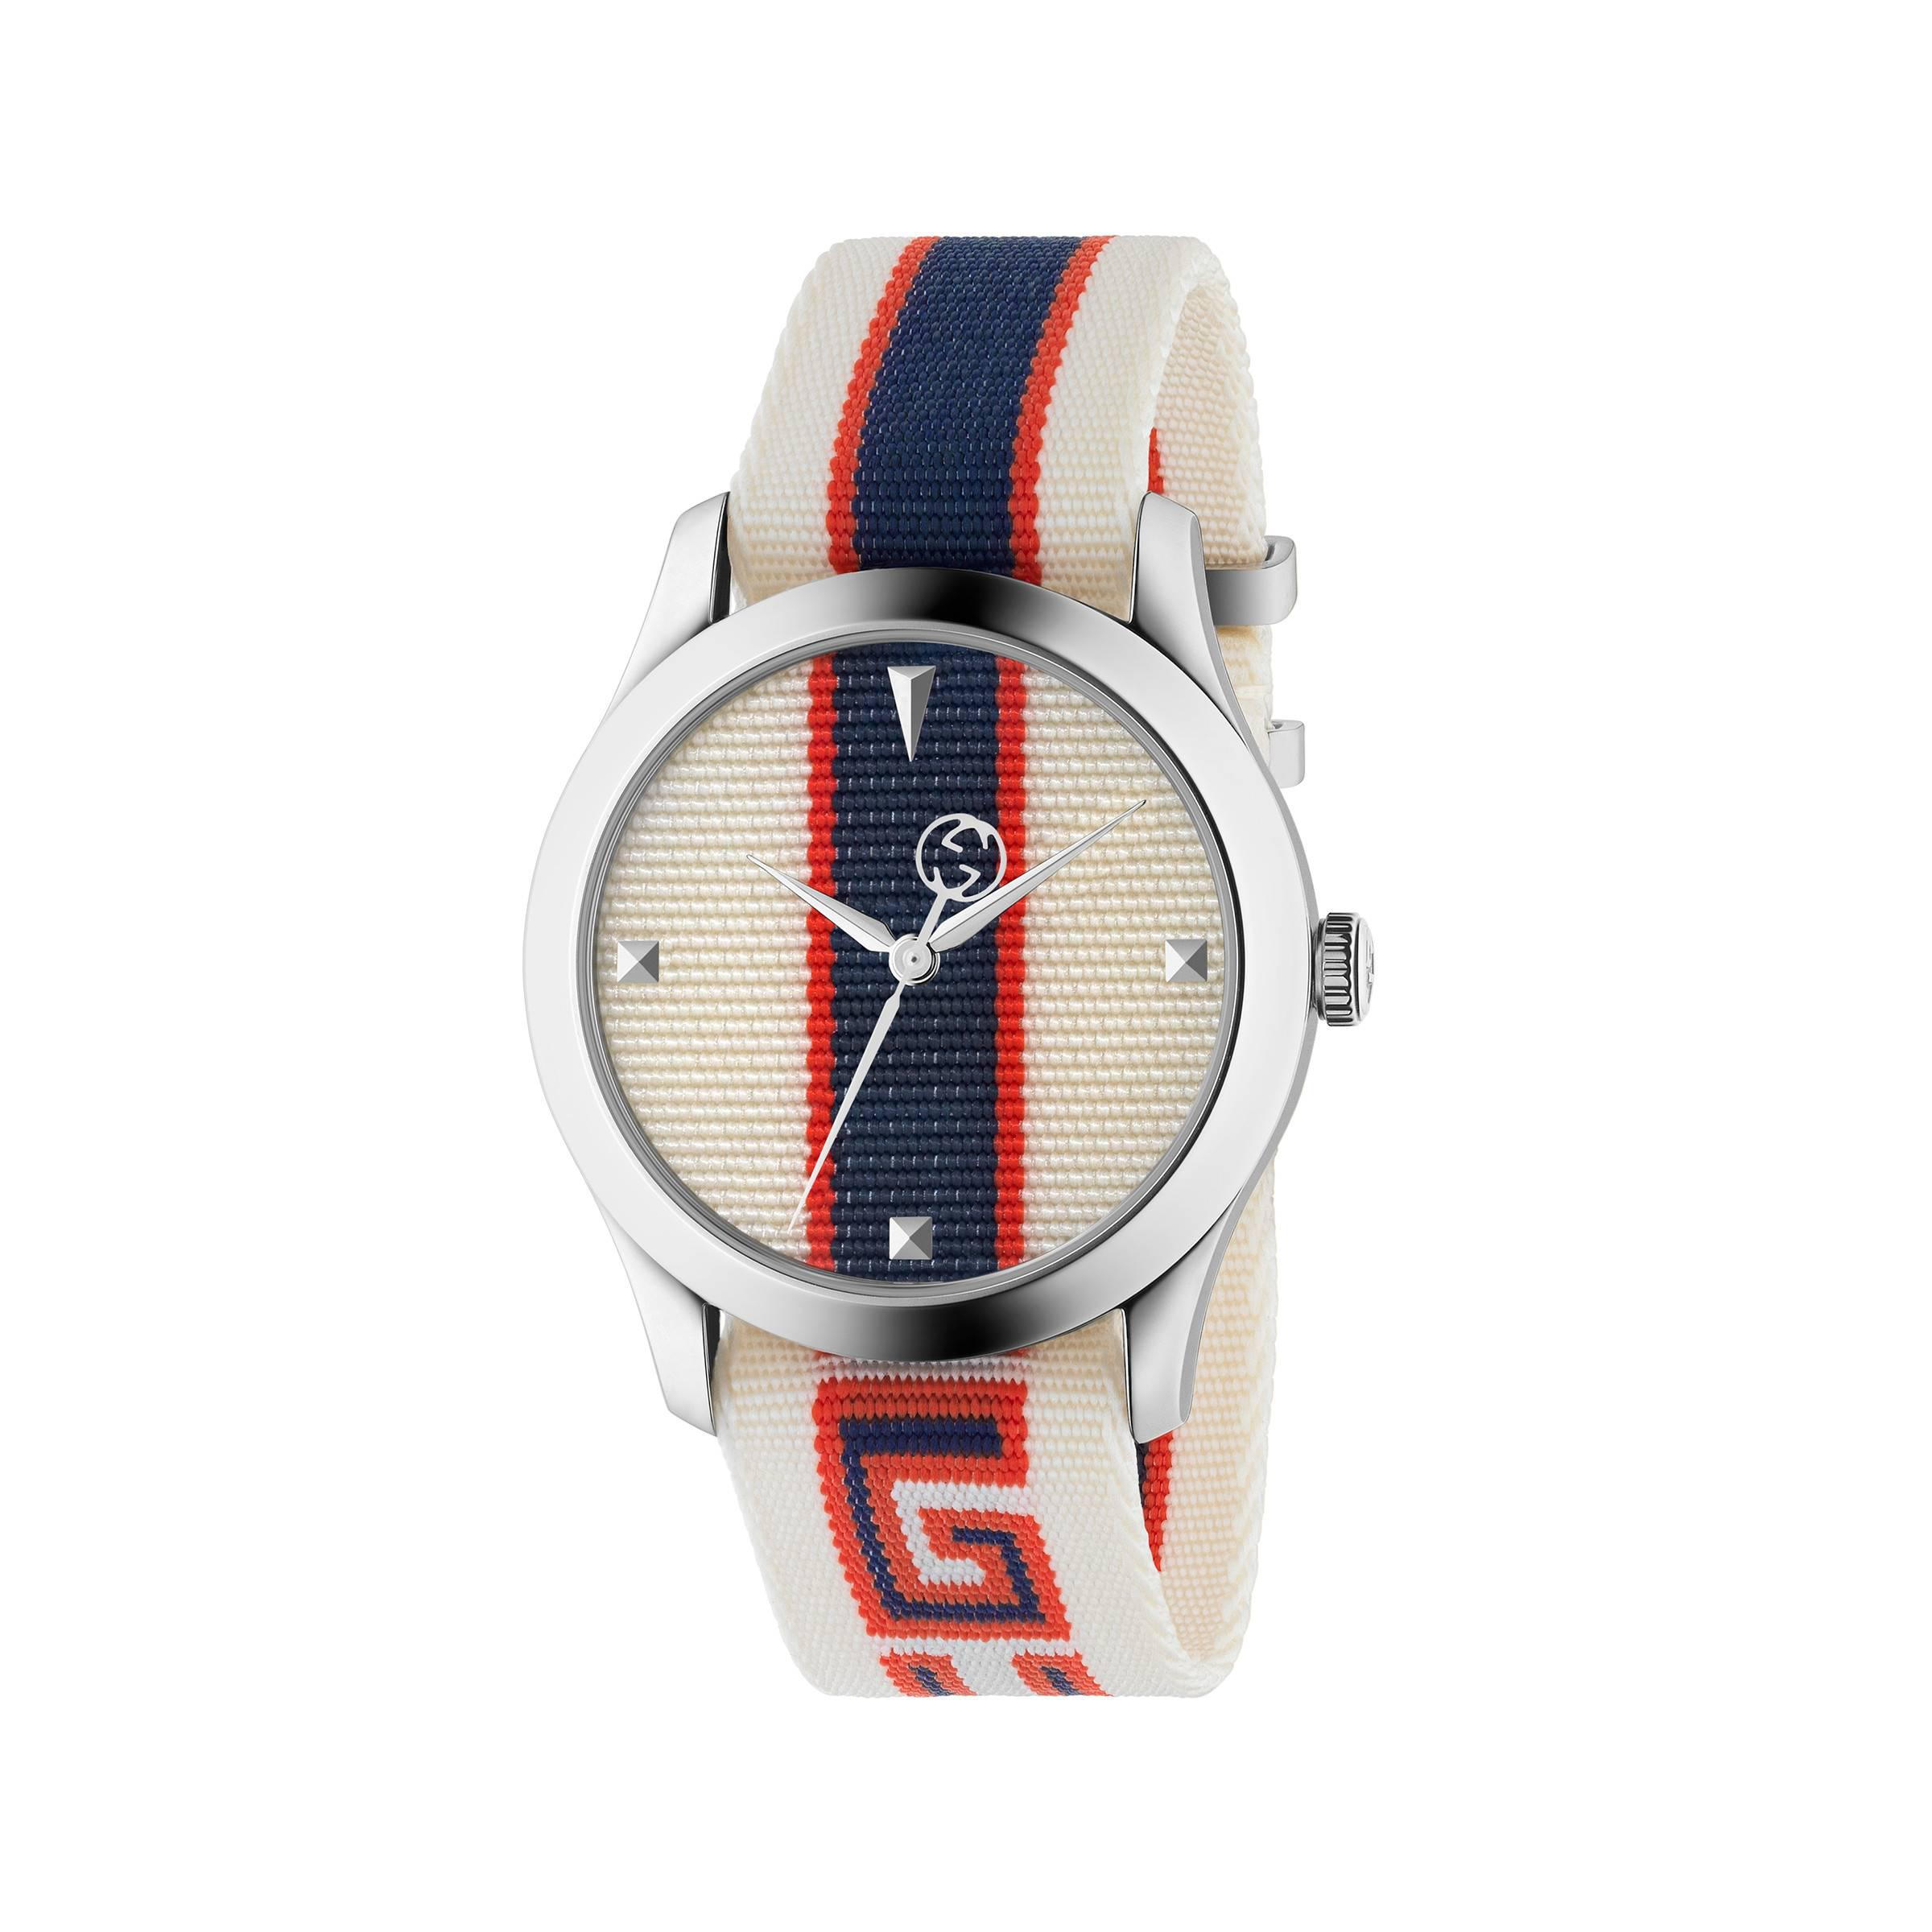 205be8ccf8c Gucci. Men s G-timeless